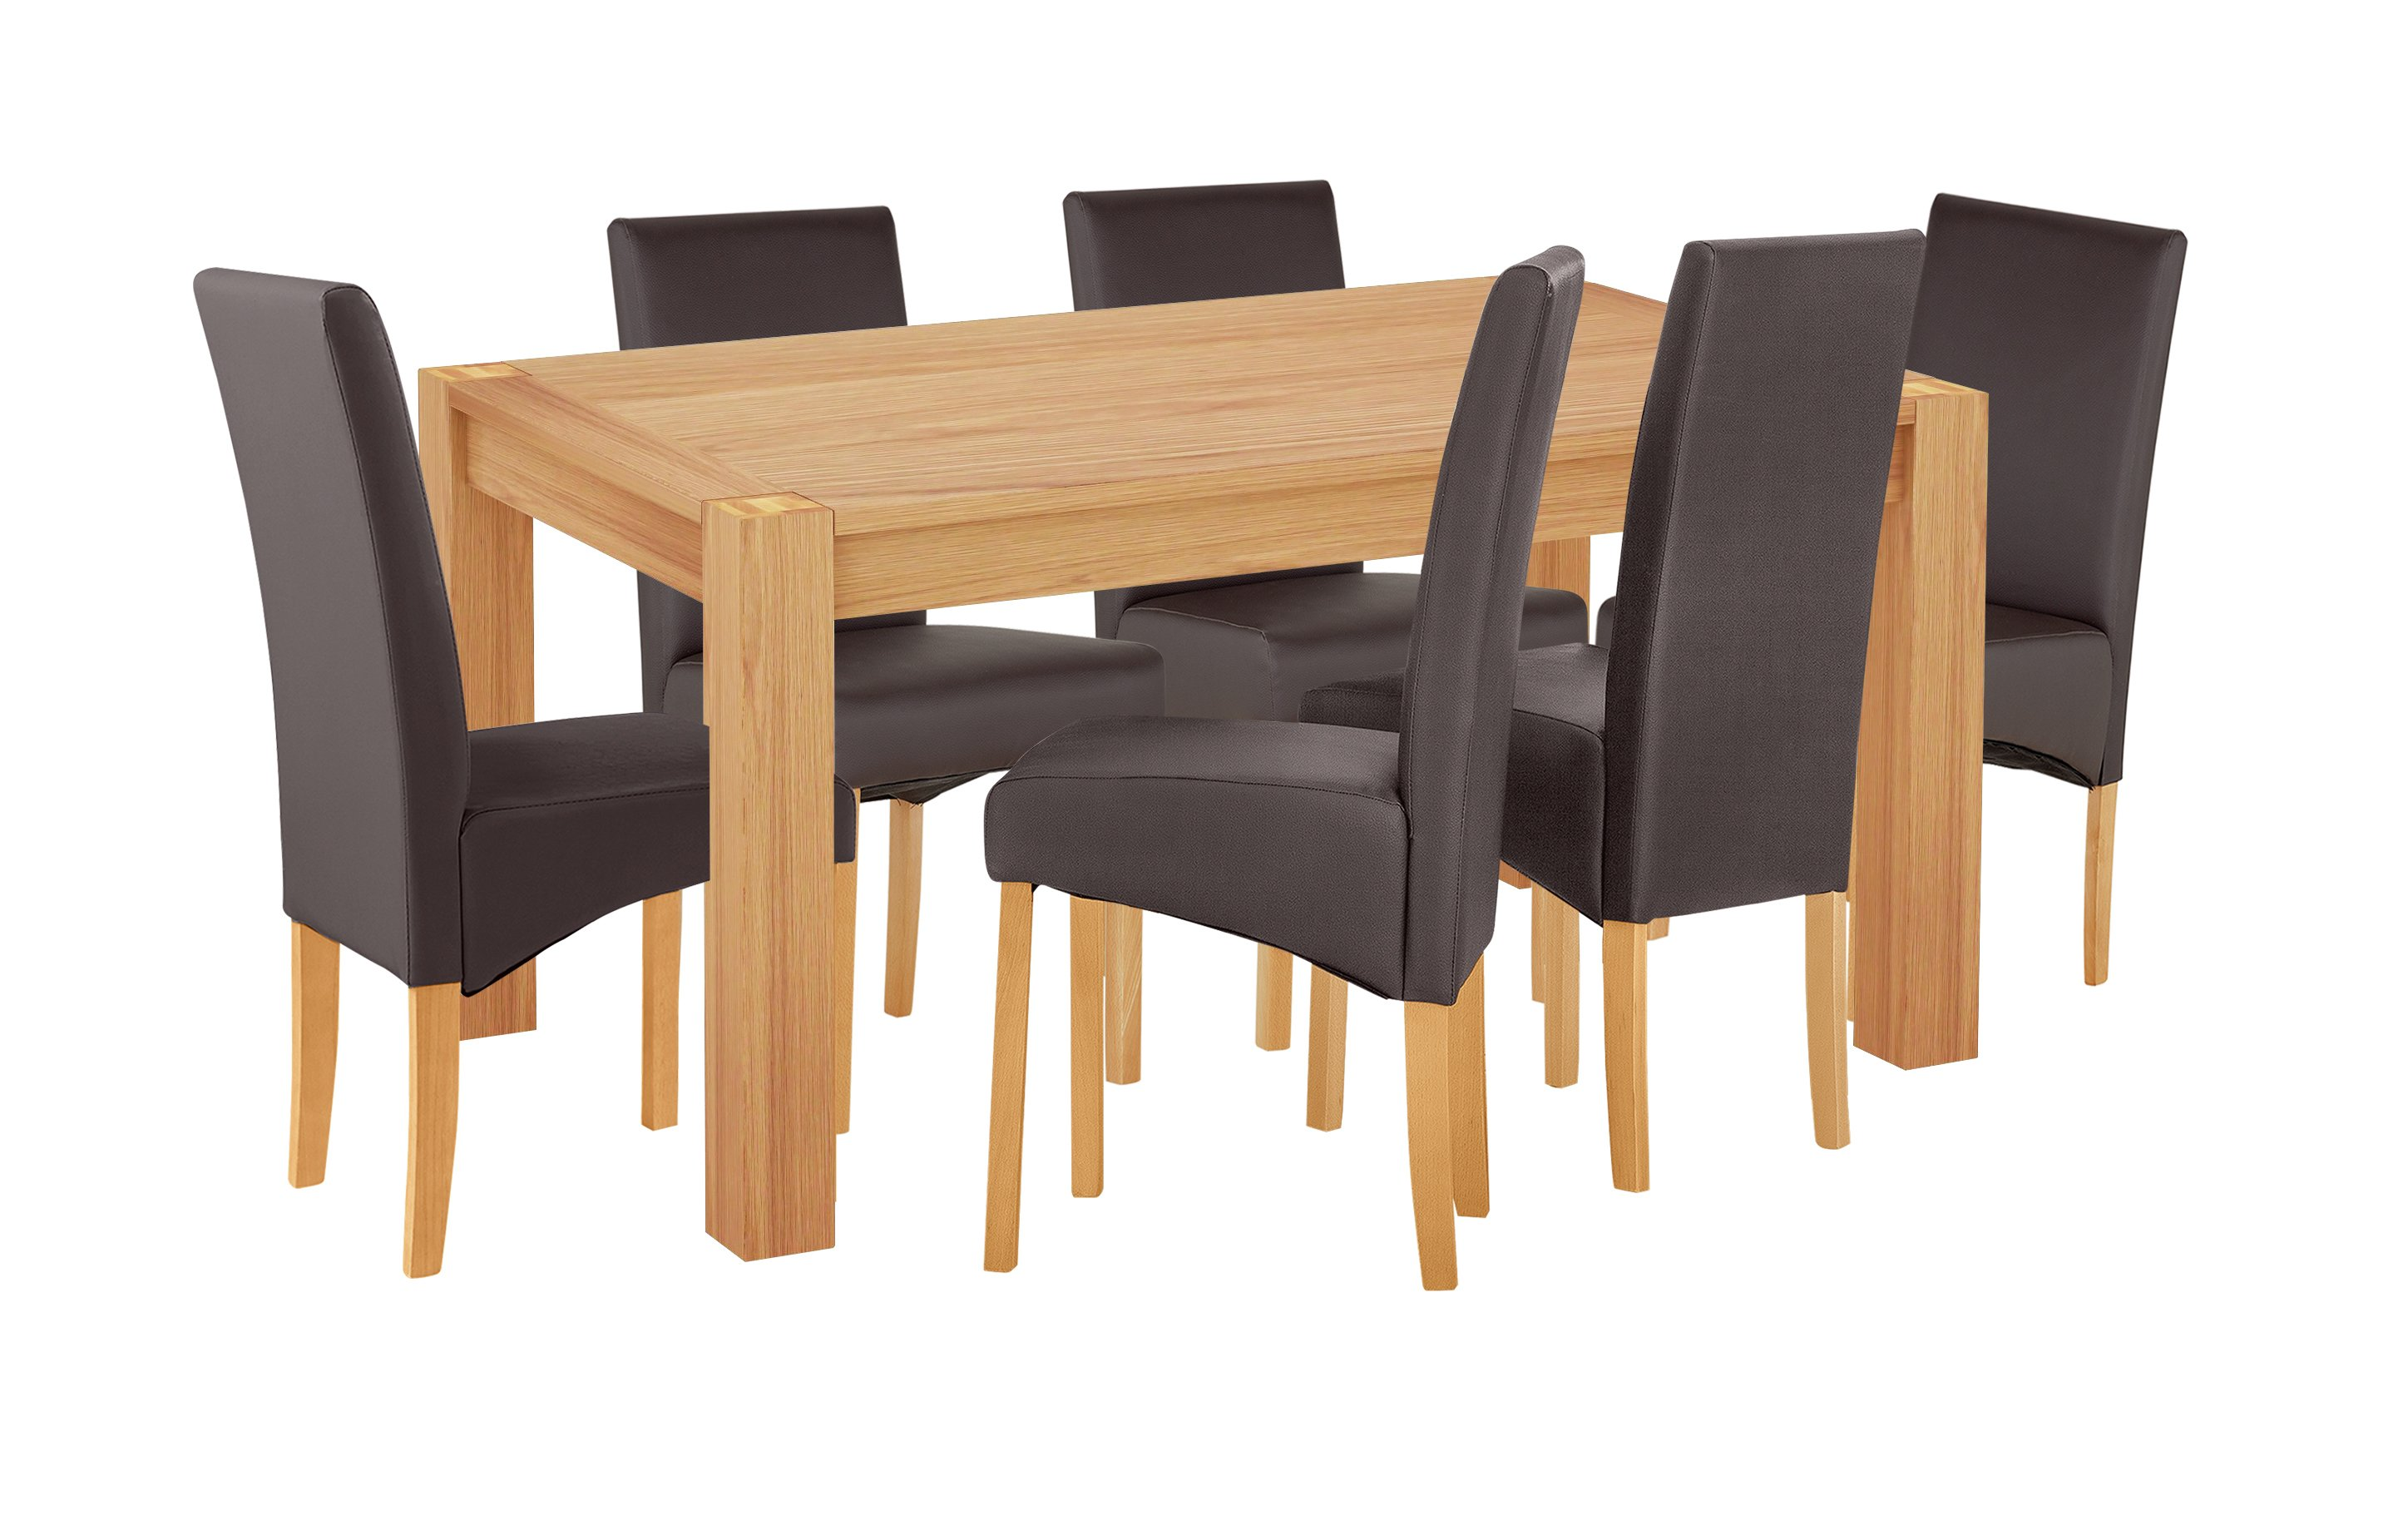 Image of Home of Style Whipsnade Dining Table & 6 Chairs